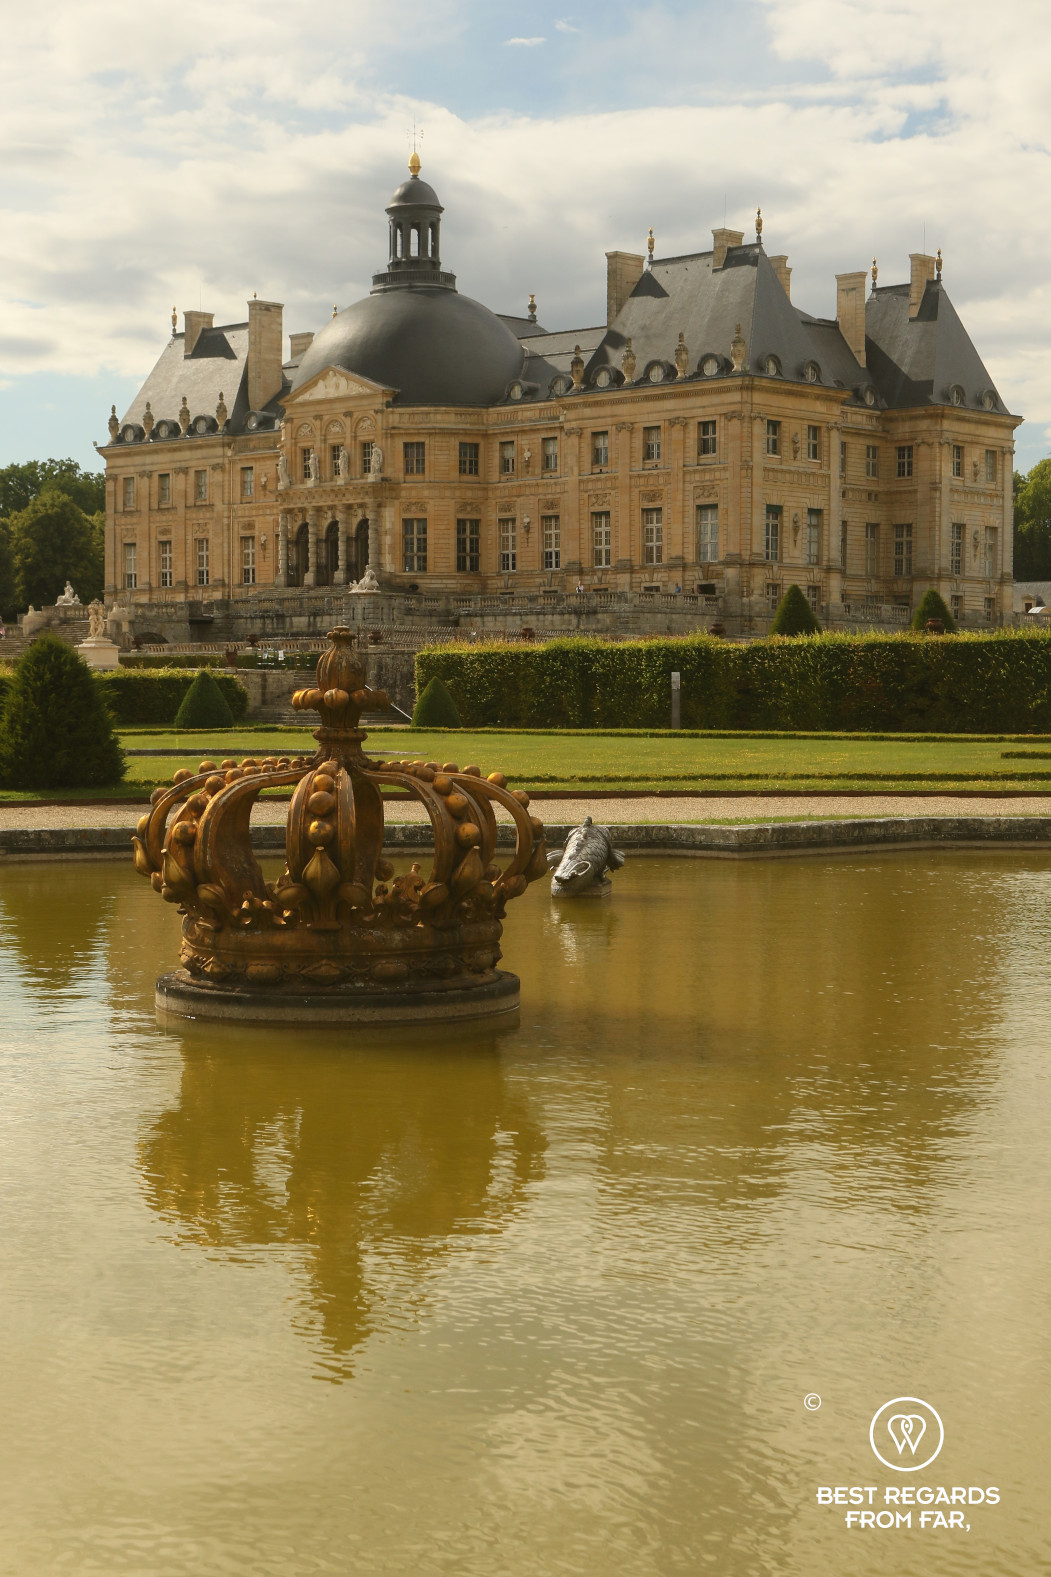 Castle of Vaux-le-Vicomte and its water pieces with a giant crown as a fountain.